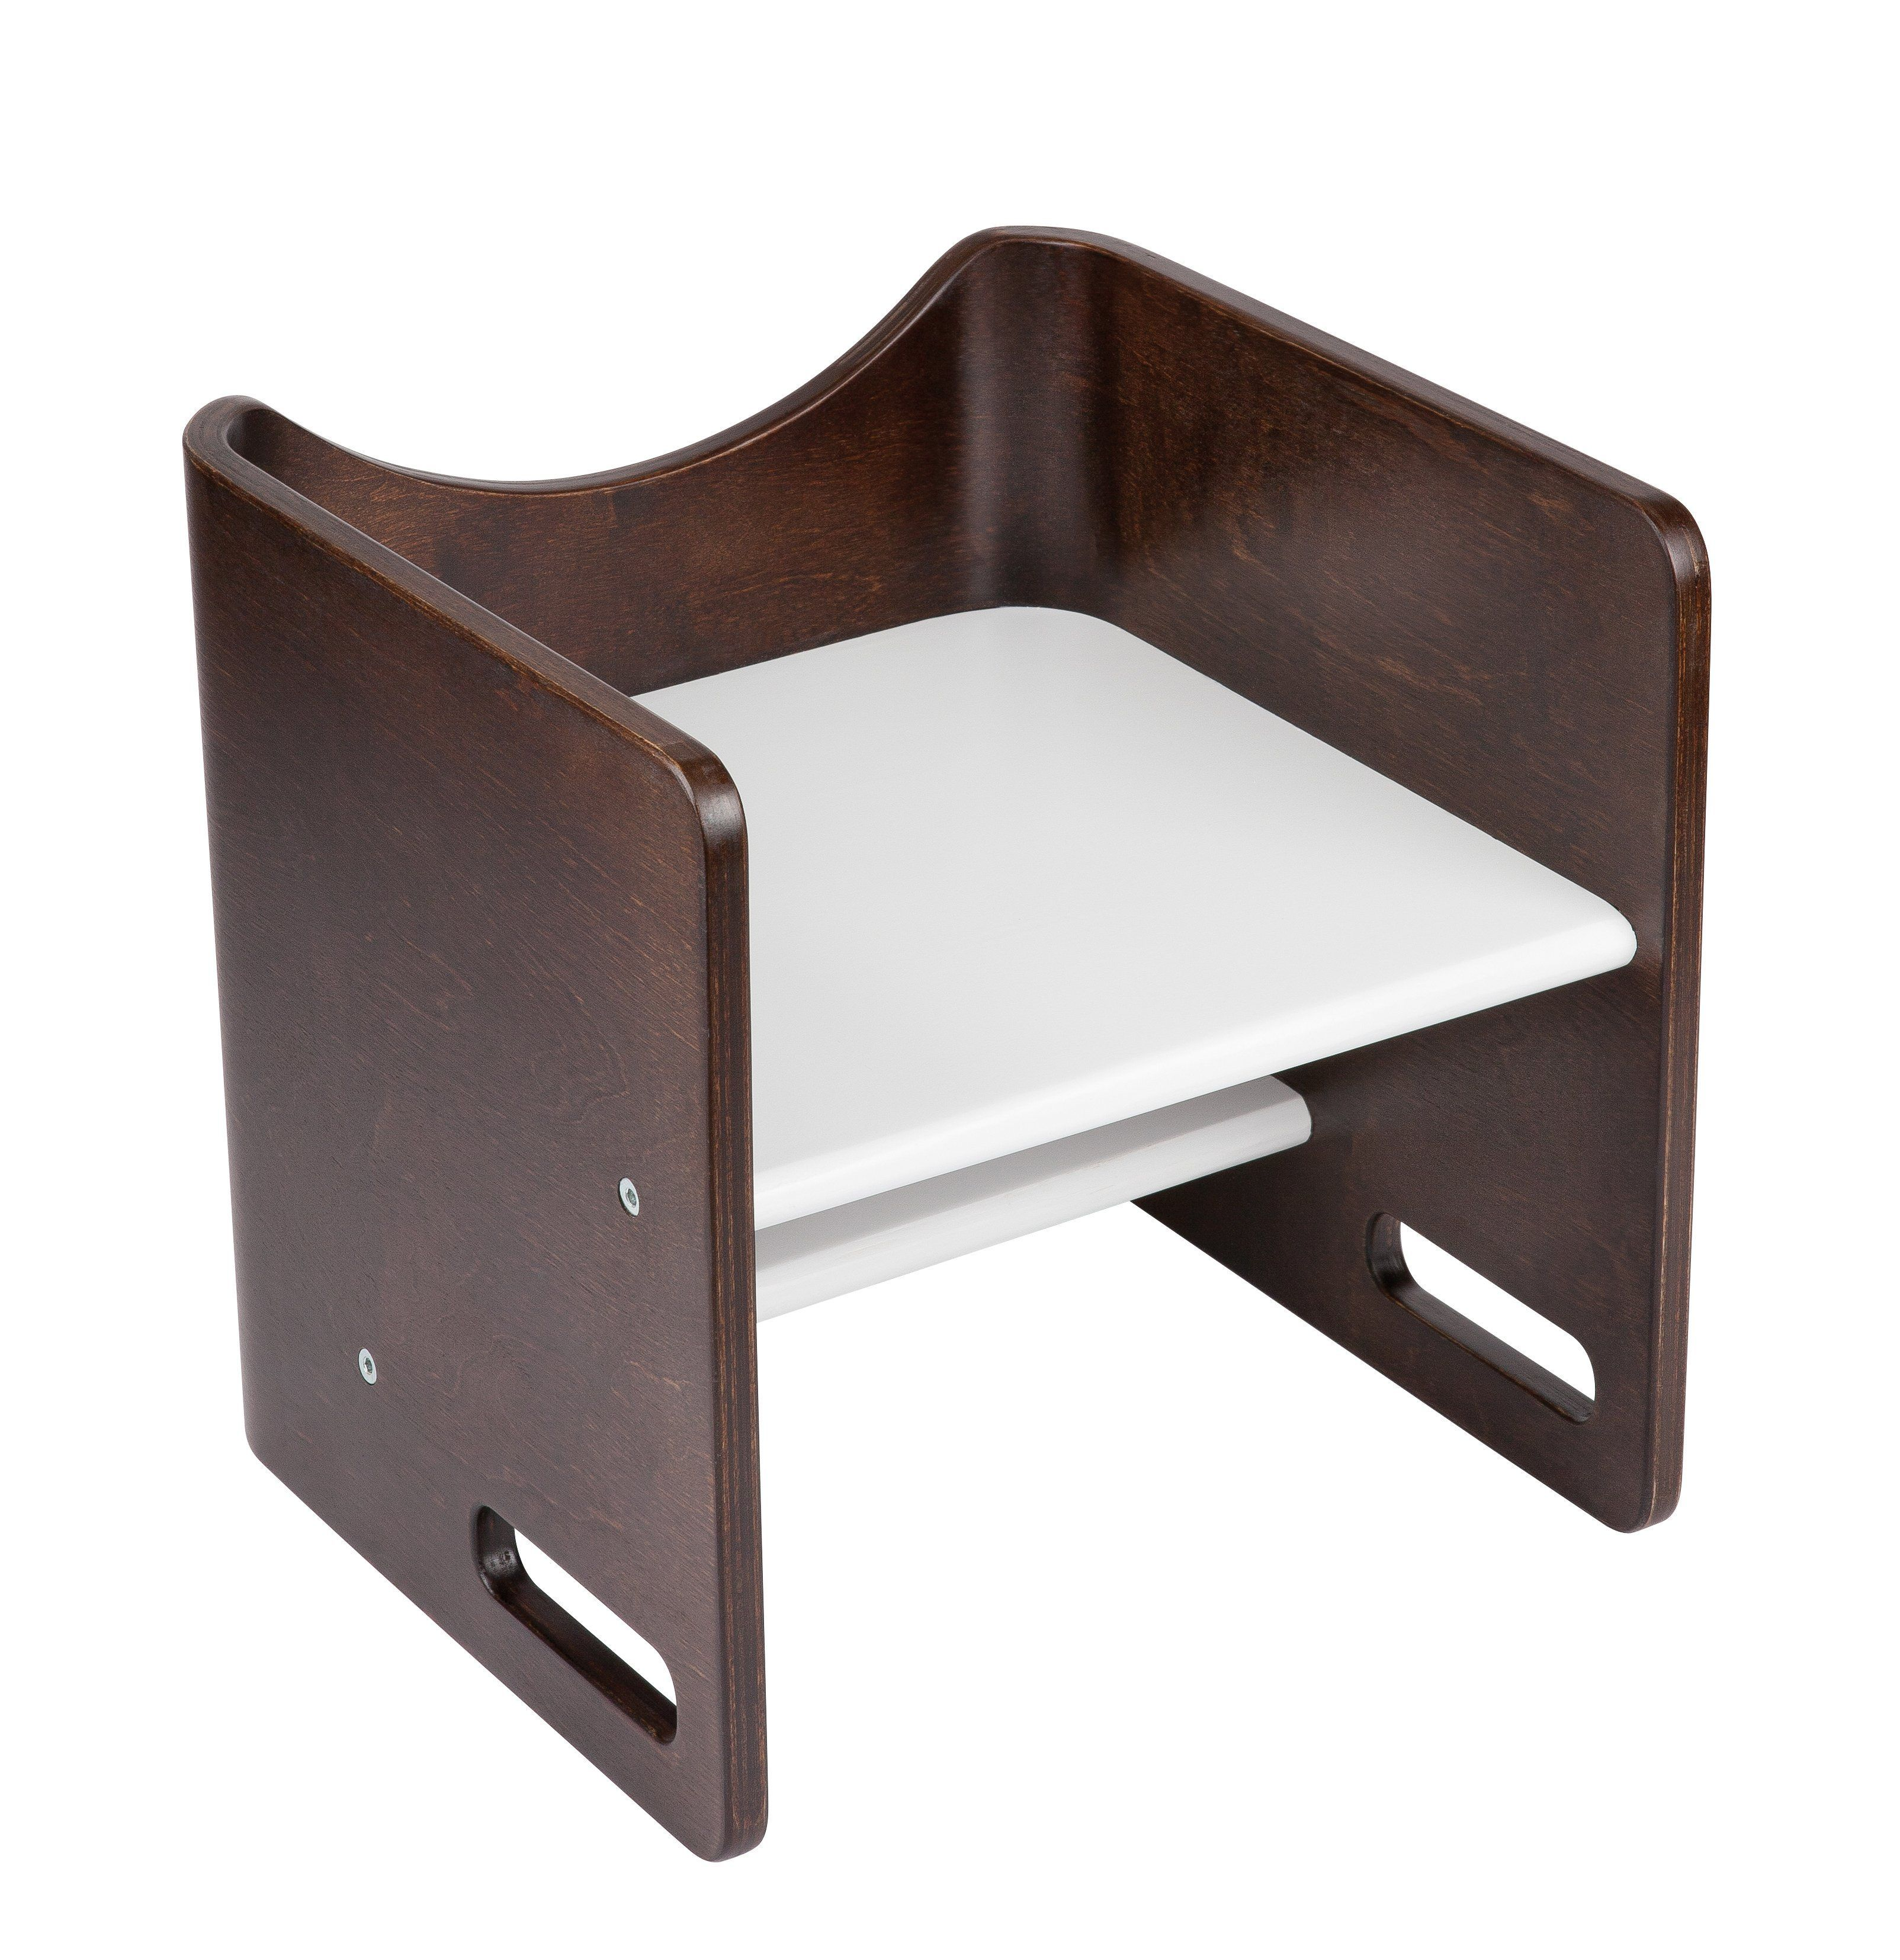 Enjoyable Wooden Step Stool That Converts Into A Wooden Booster And Pabps2019 Chair Design Images Pabps2019Com